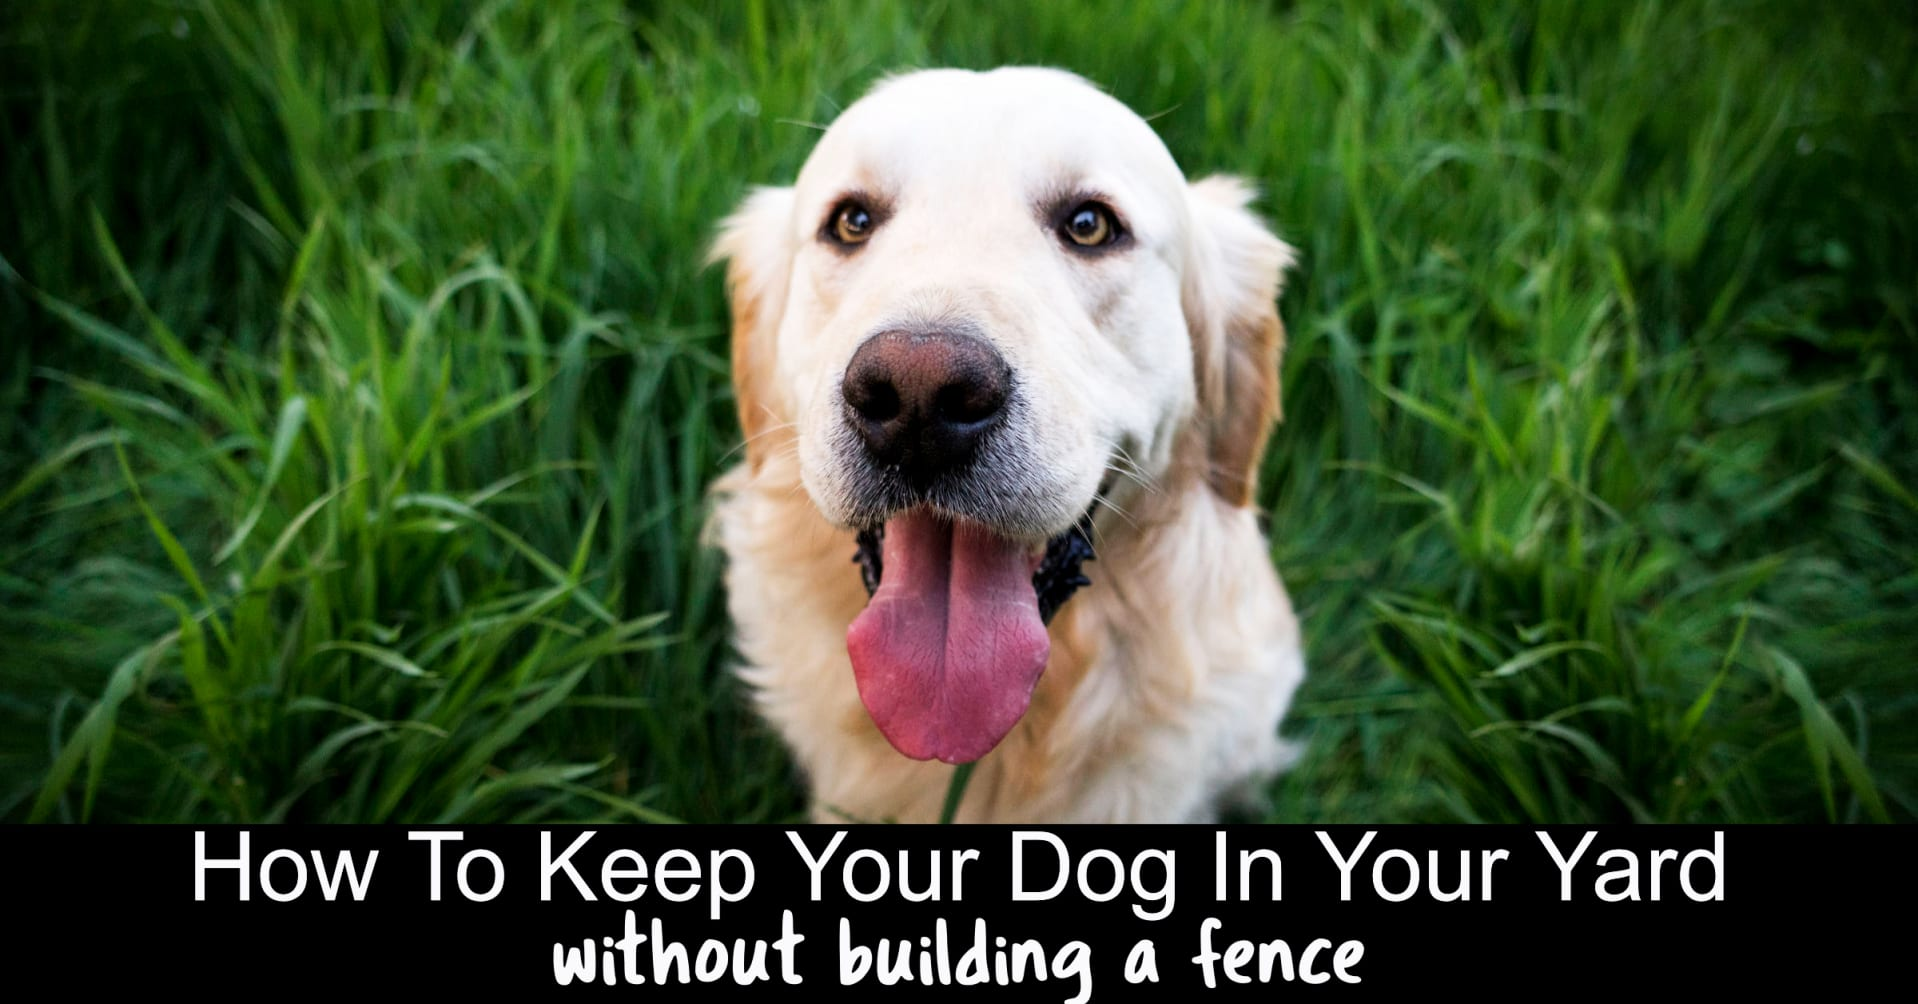 Keep do in yard without fence - electric dog fence and wireless dog fence reviews - here's how to keep a dog outside without a fence